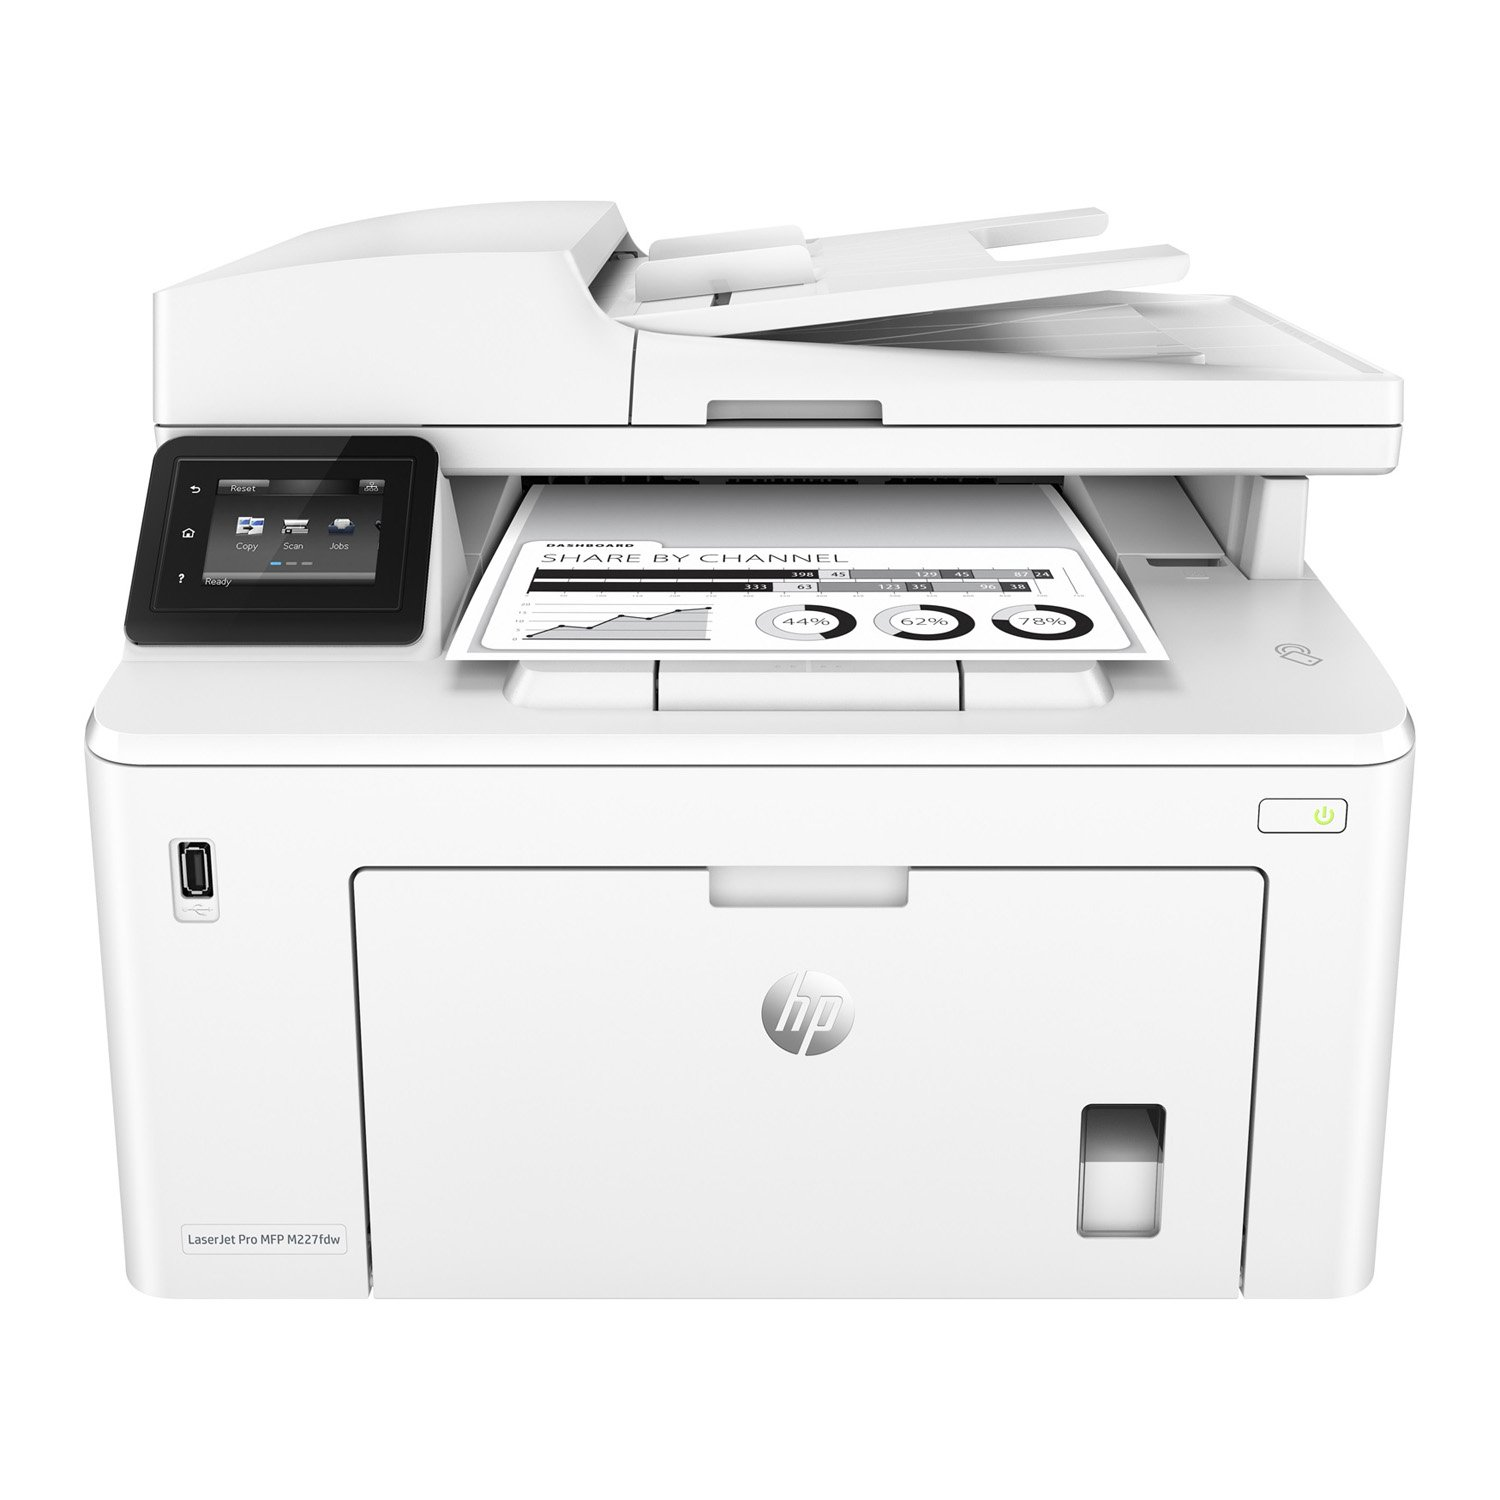 Top 10 Best Color Laser Printers - Lists and Reviews 2019